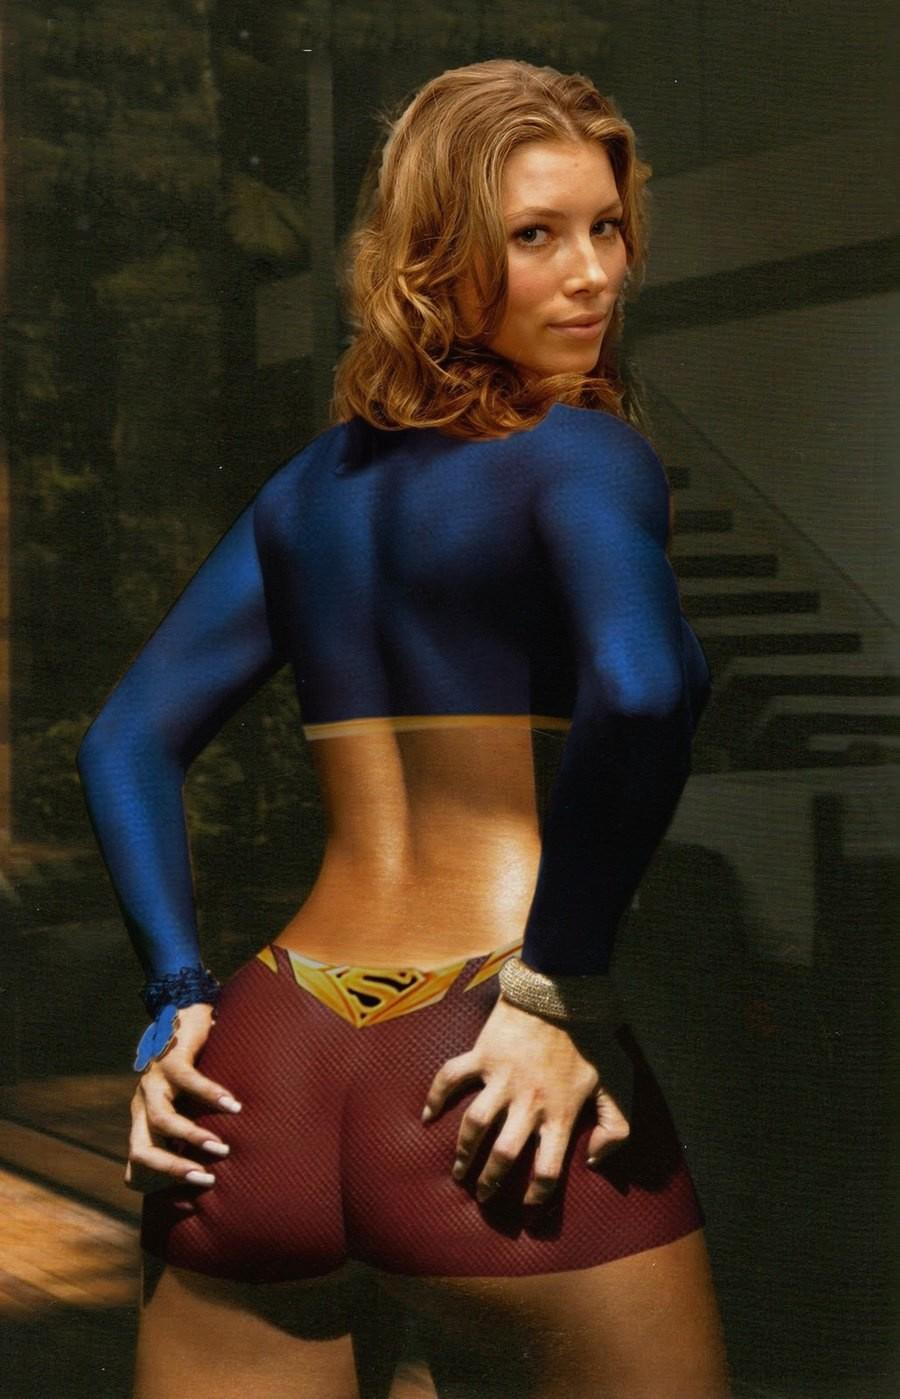 Jessica Biel Naked Porn 30 hottest pictures of jessica biel big butt will make you